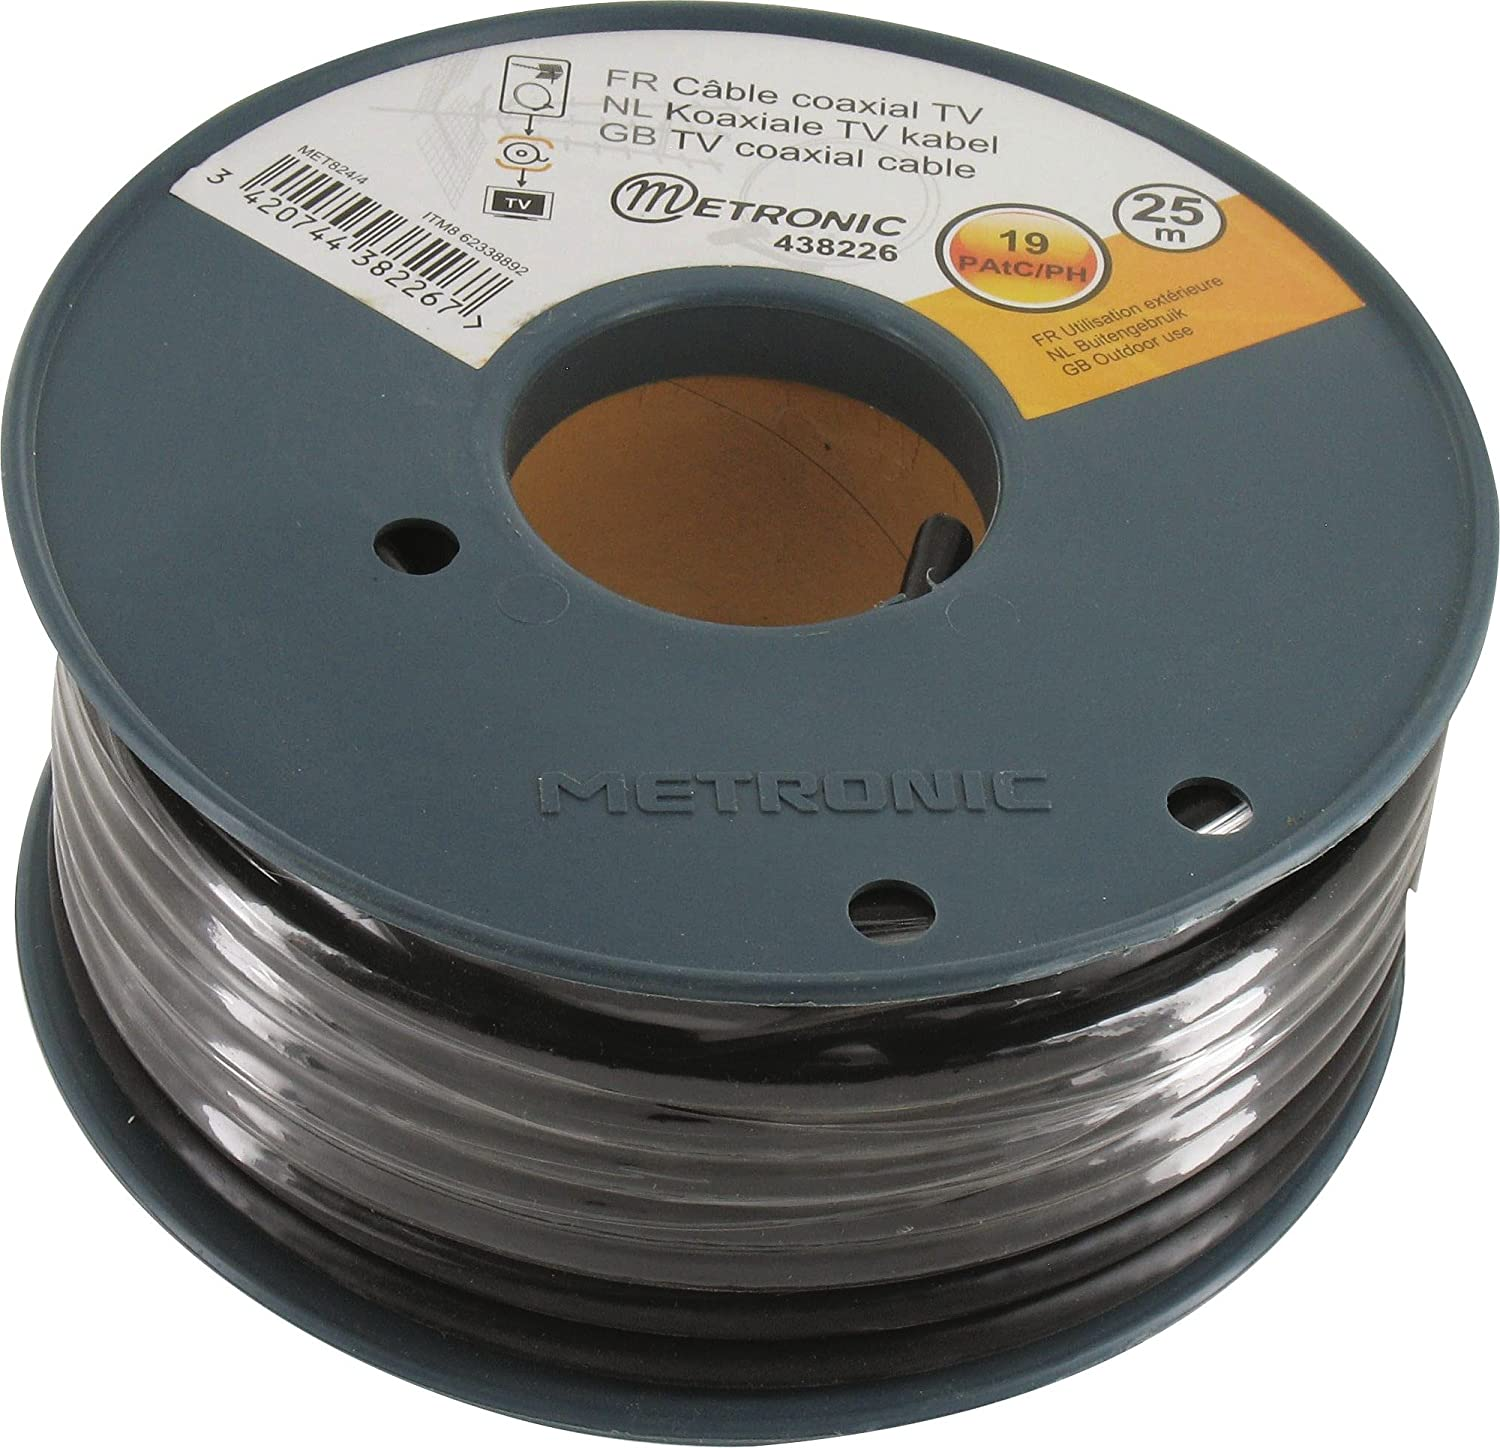 Metronic 438226 Coaxial Cable Coil Roll 25 m Shielded: Amazon.co.uk ...